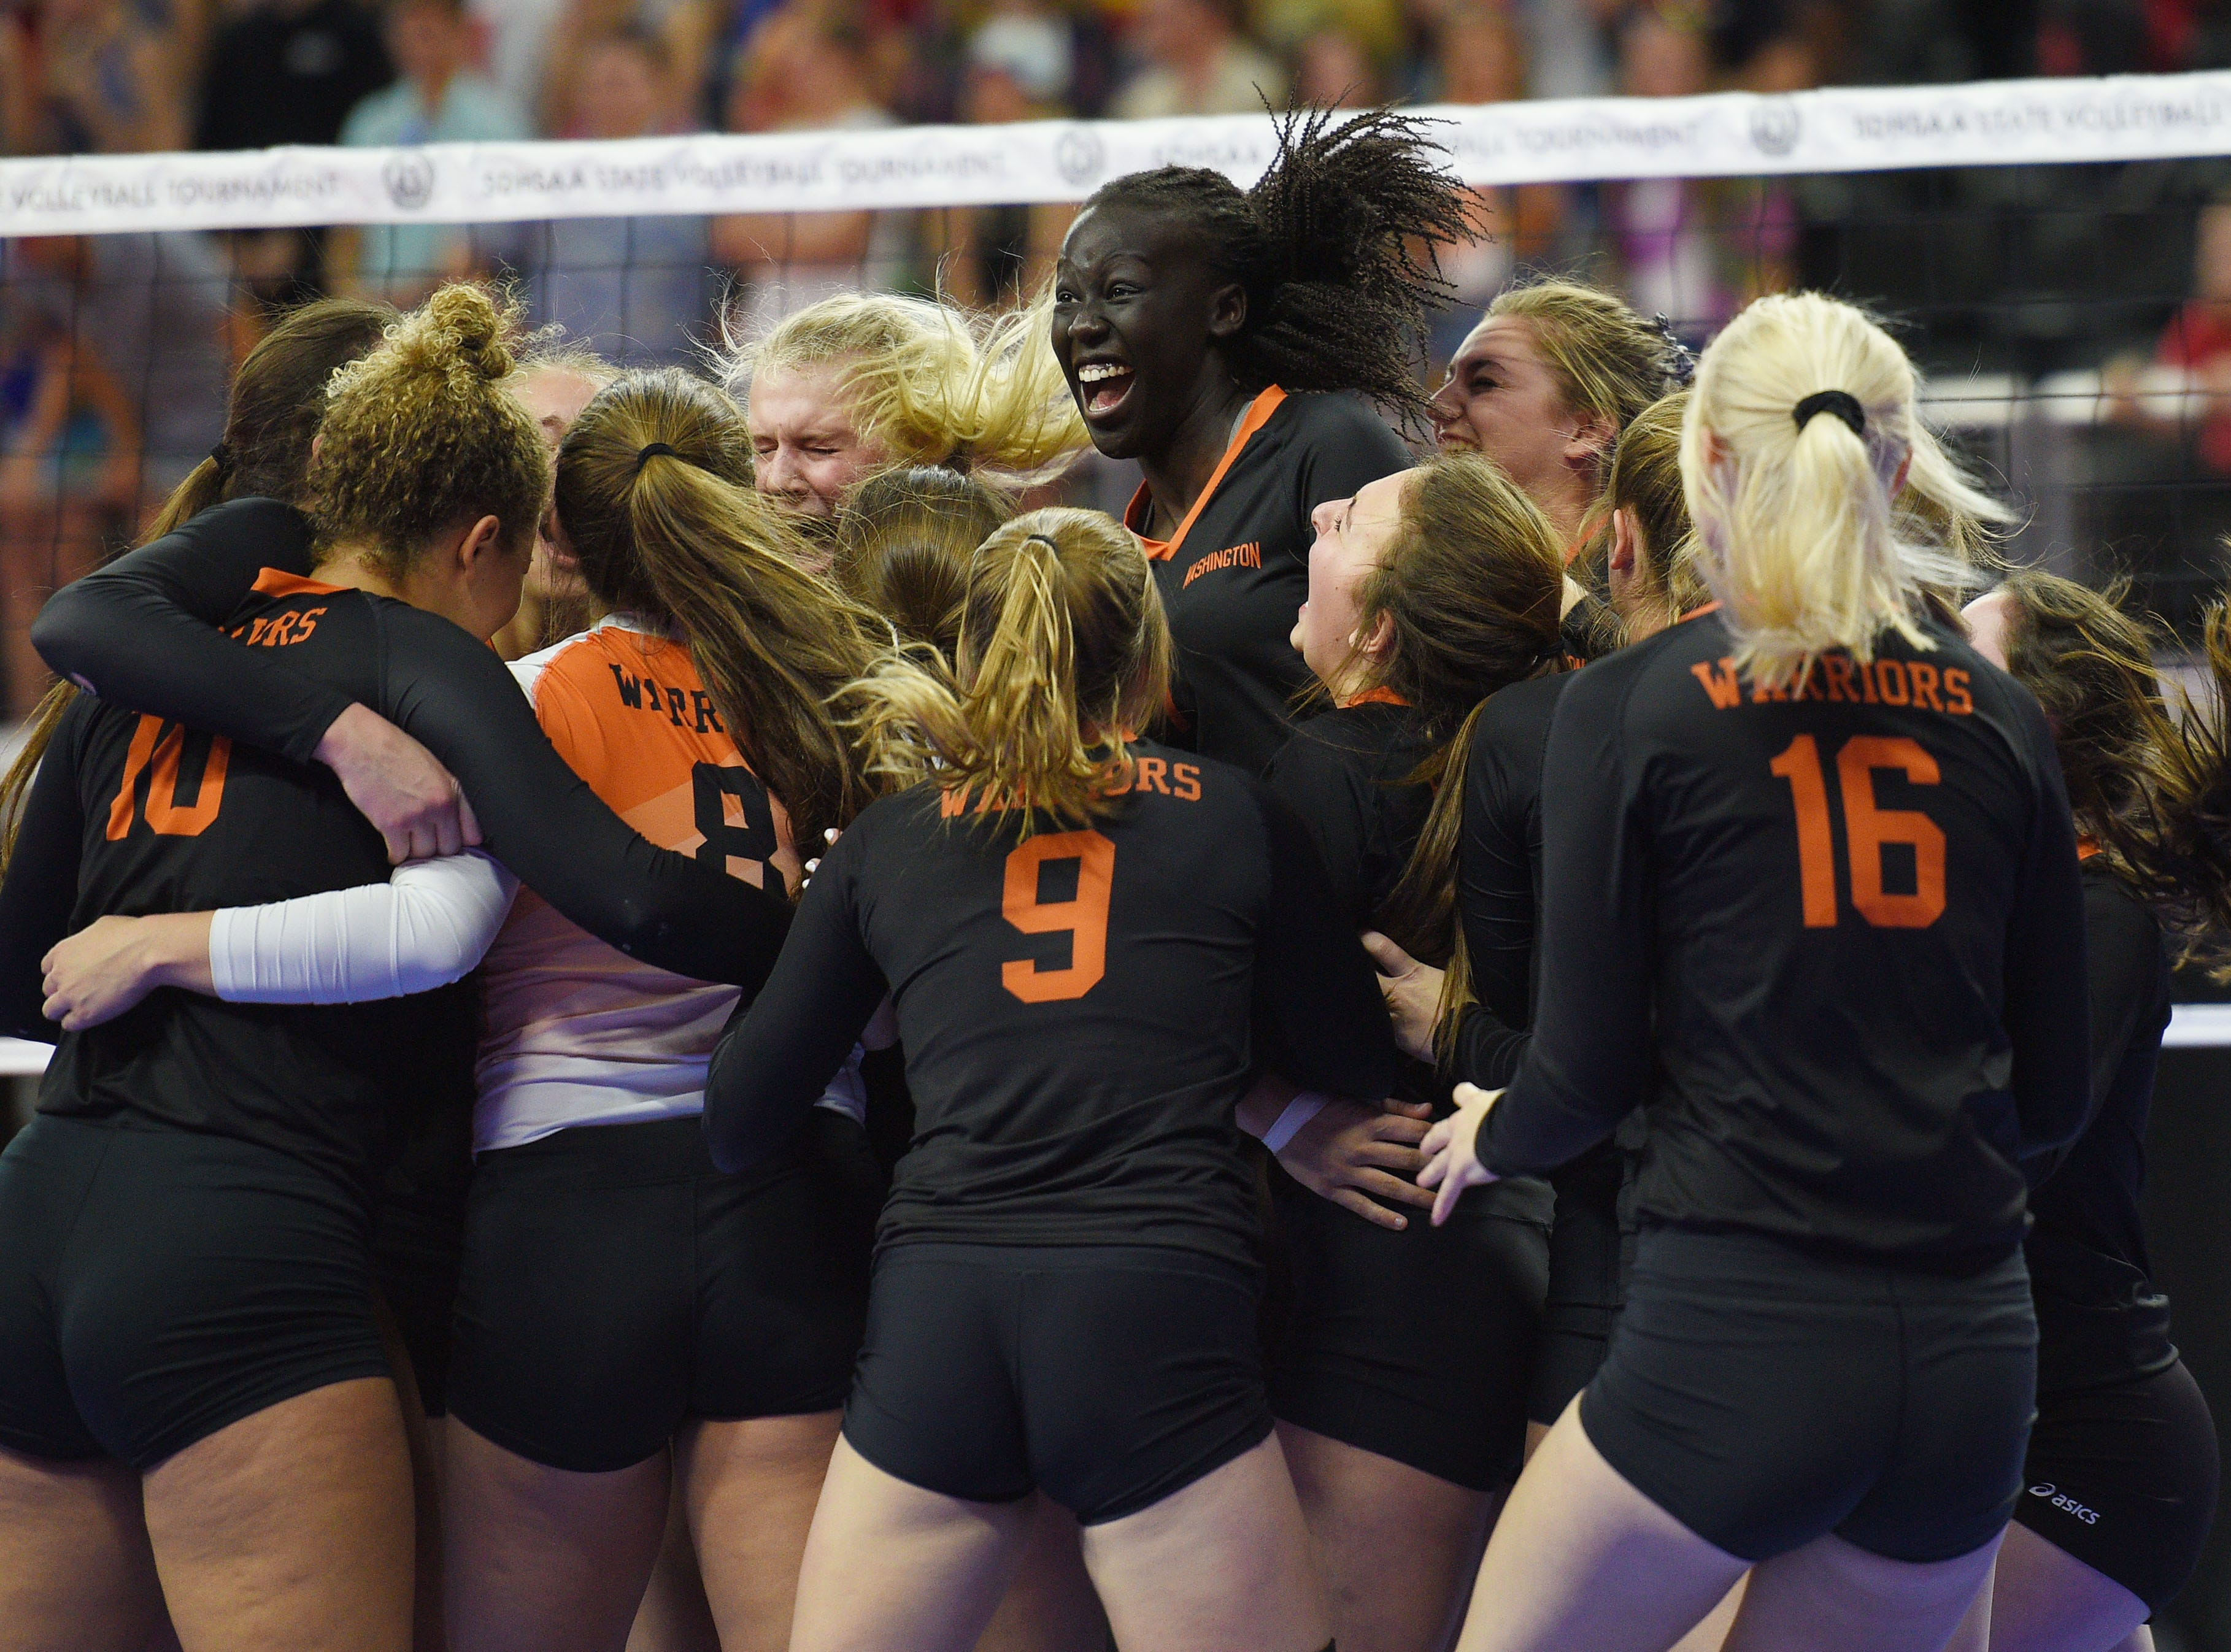 Washington celebrates after they win the game against O'Gorman during the semifinals Friday, Nov. 16, at the Denny Sanford Premier Center in Sioux Falls.